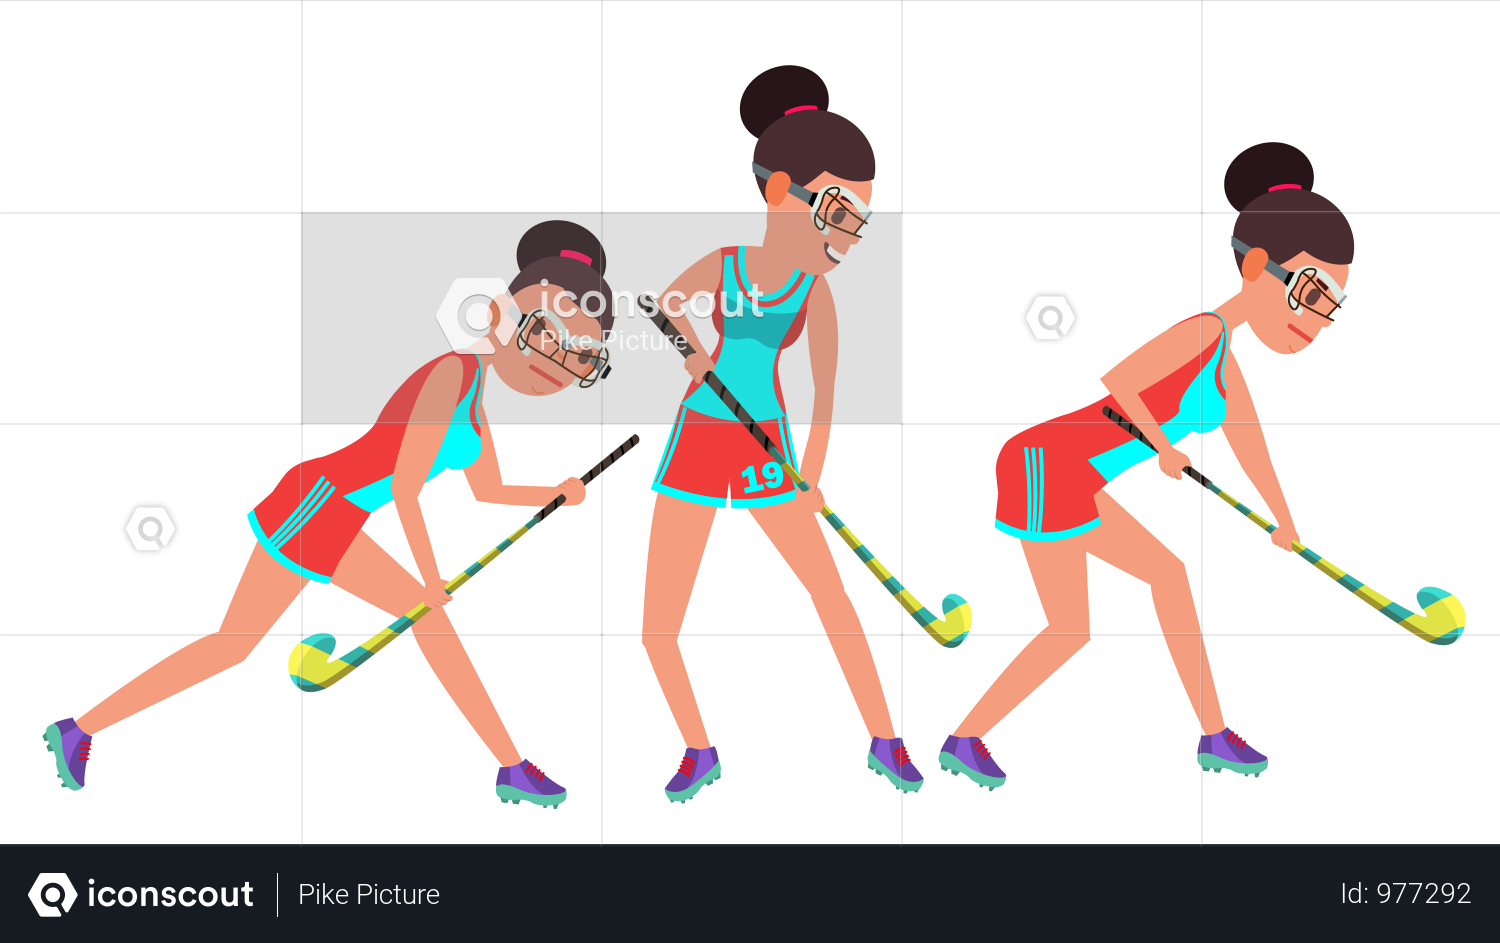 Field Hockey Female Player Vector Dribbling Ball In Action Poses Women S Grass Hockey Match Cartoon Field Hockey Field Hockey Girls Character Illustration